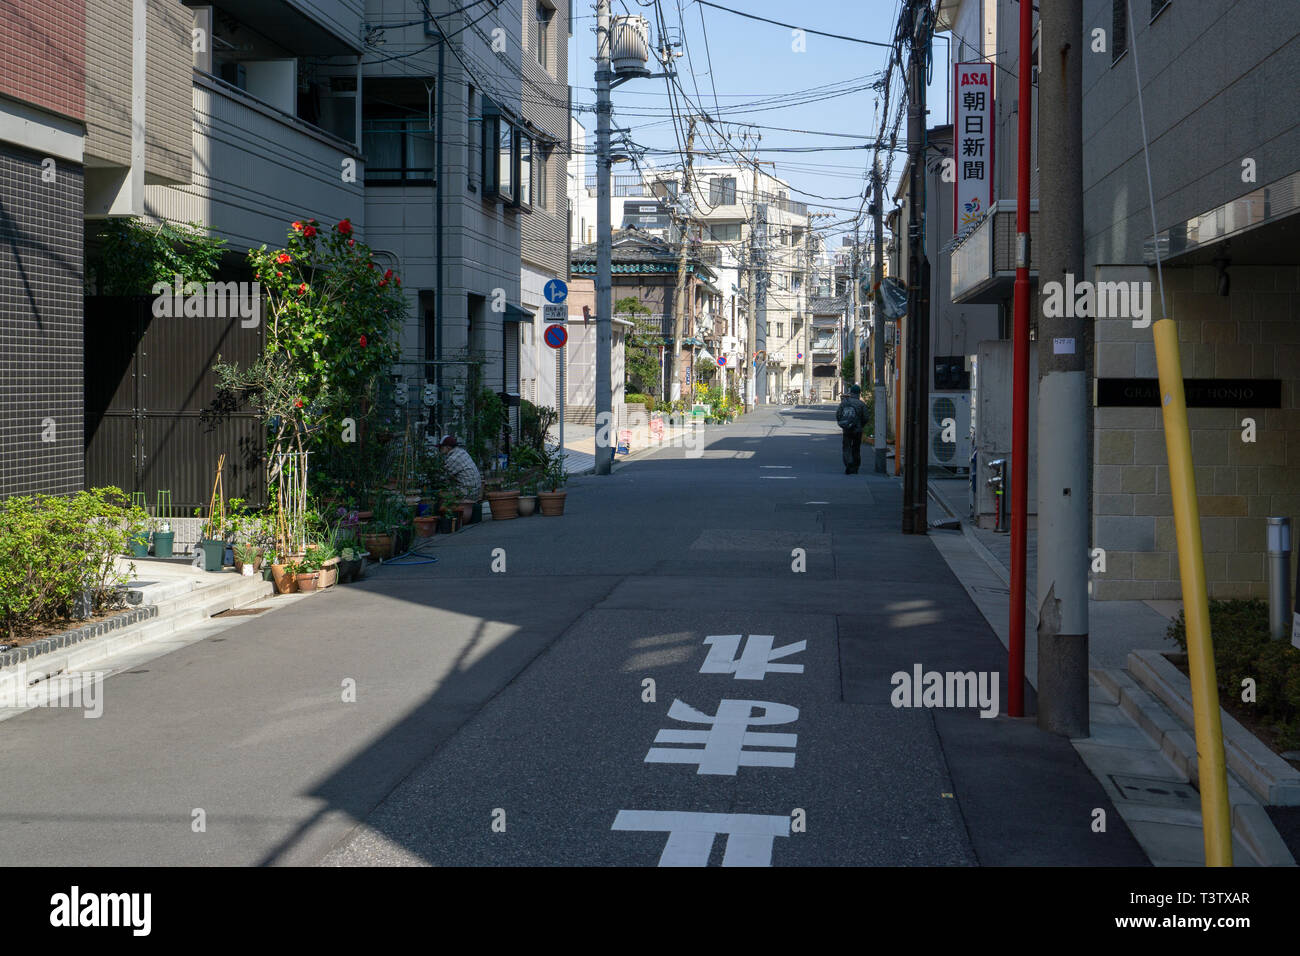 I enjoyed exploring less touristy areas of Asakusa to catch glimpses into everyday life & less explored & photographed parts of Asakusa in Tokyo. - Stock Image